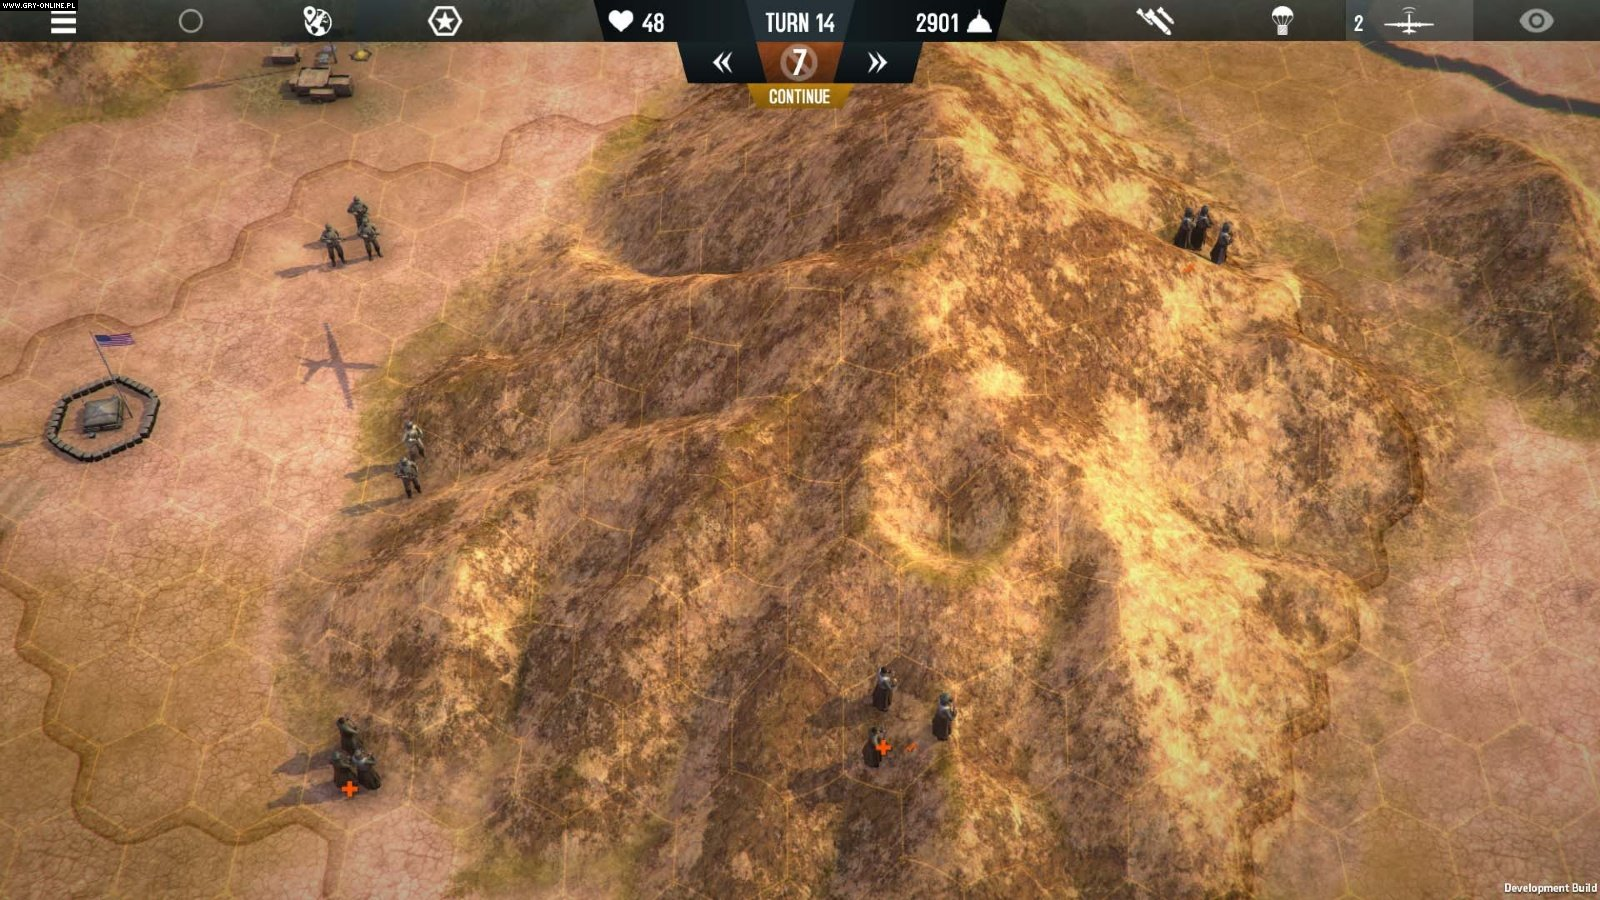 Afghanistan '11 PC Games Image 4/17, Every Single Soldier, Slitherine